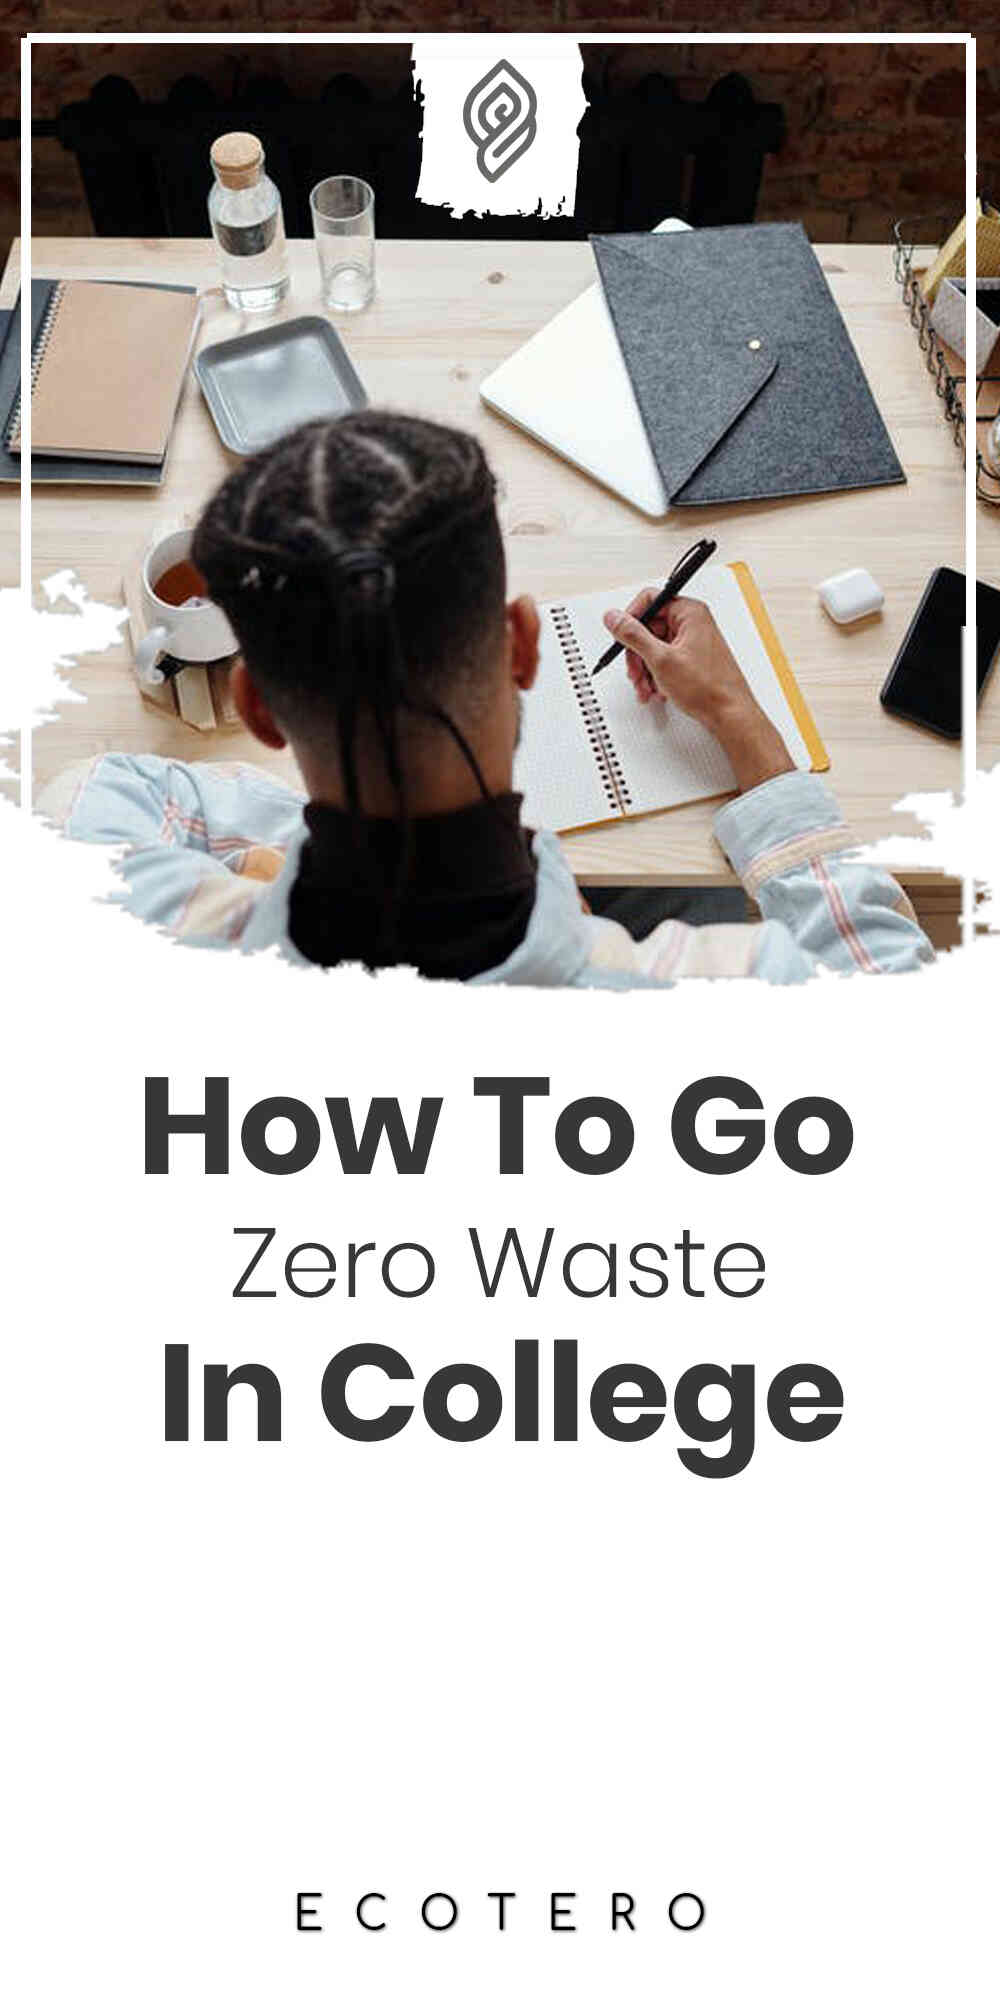 20 Tips for Going Zero Waste in College